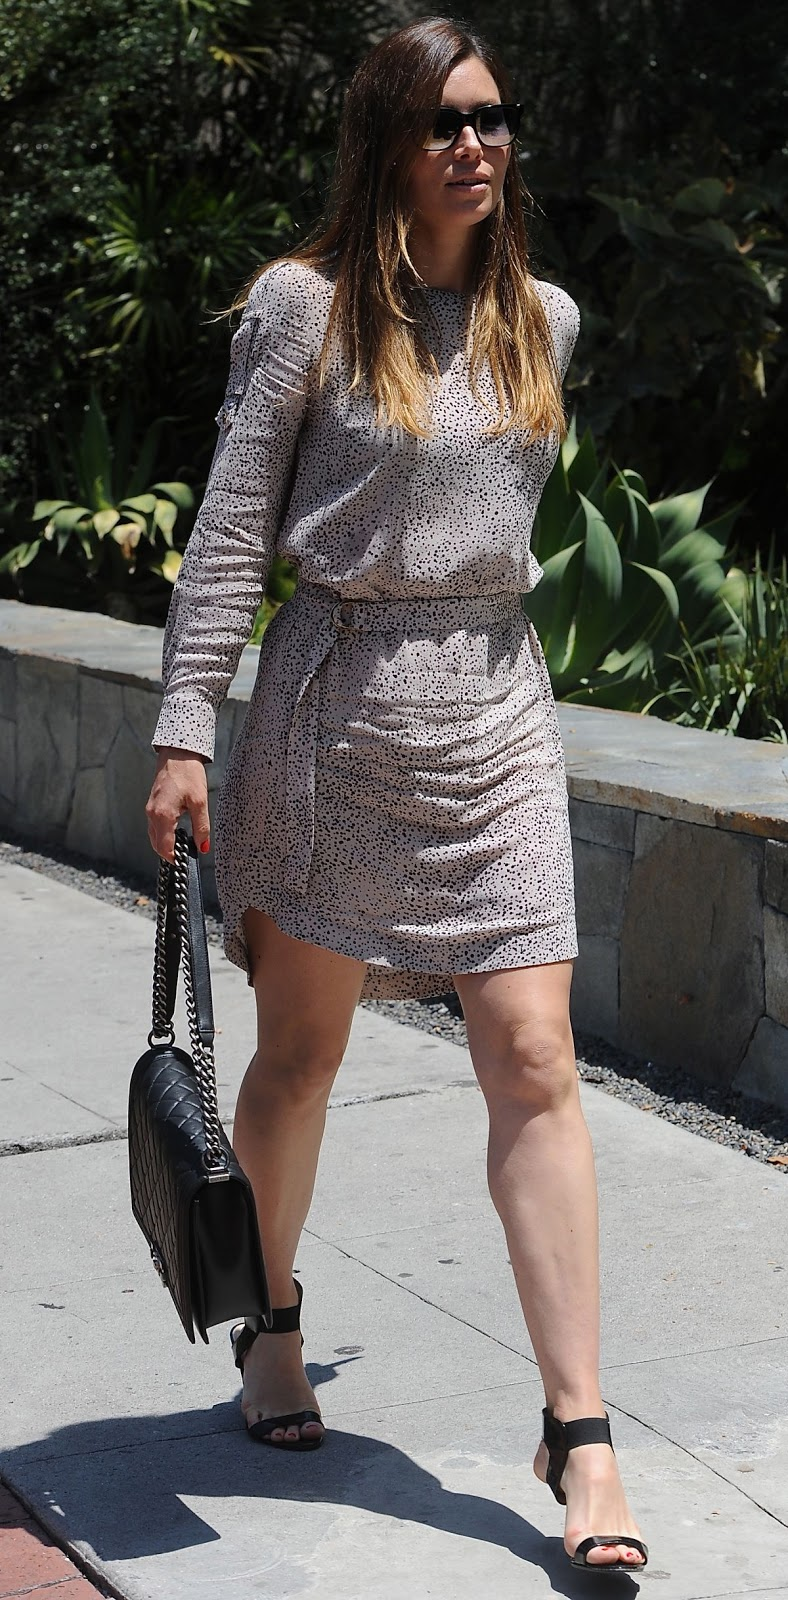 Photos of Jessica Biel out and about in West Hollywood